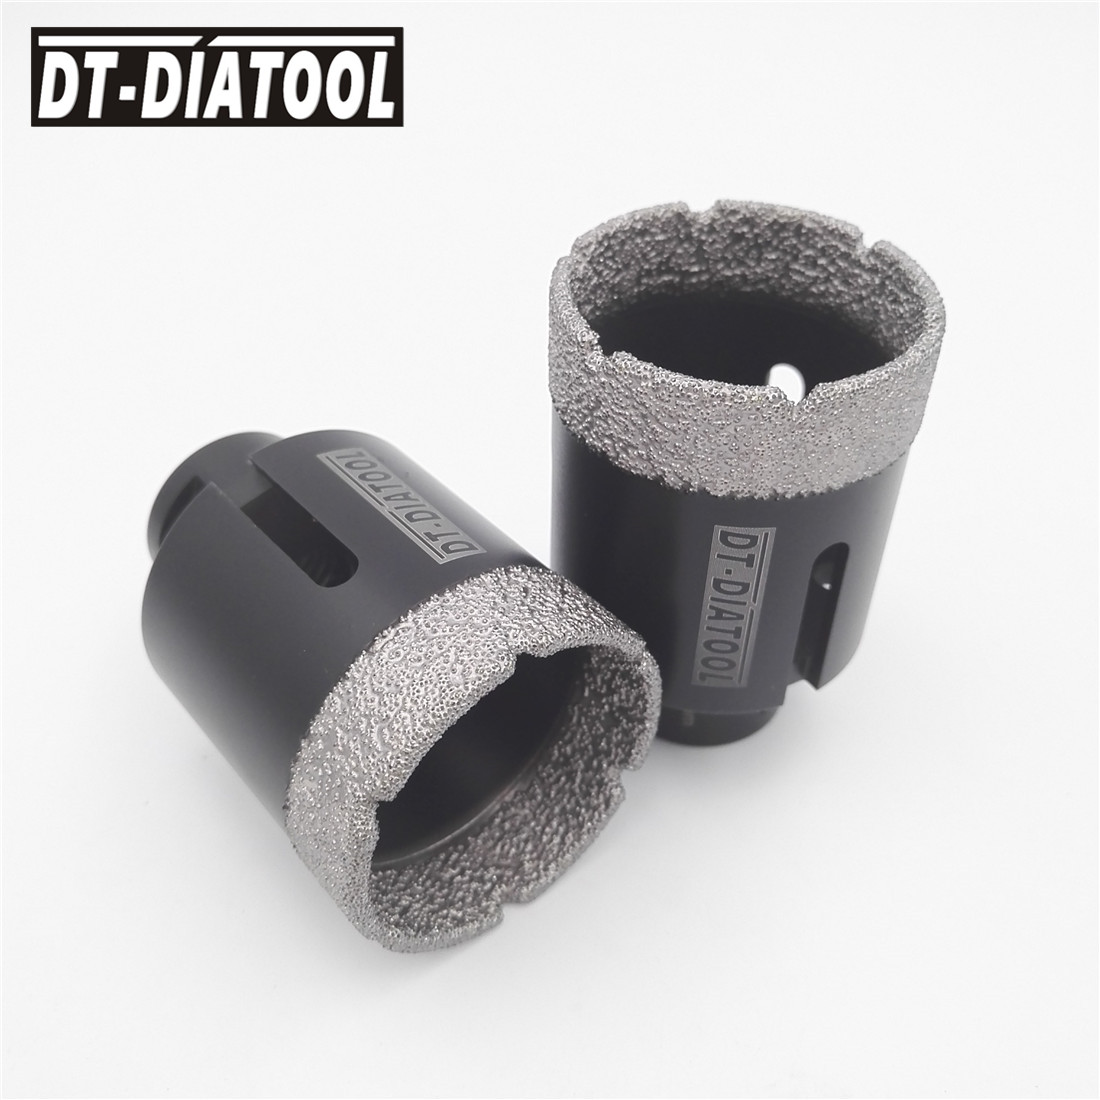 2pcs 2 51MM Dry Diamond drilling core bits Vacuum brazed Tech5/8-11 female thread Drill bits hole saw for tile marble granite hole saw 2diamond core drill bits for drilling for stone and concrete dry drill bit